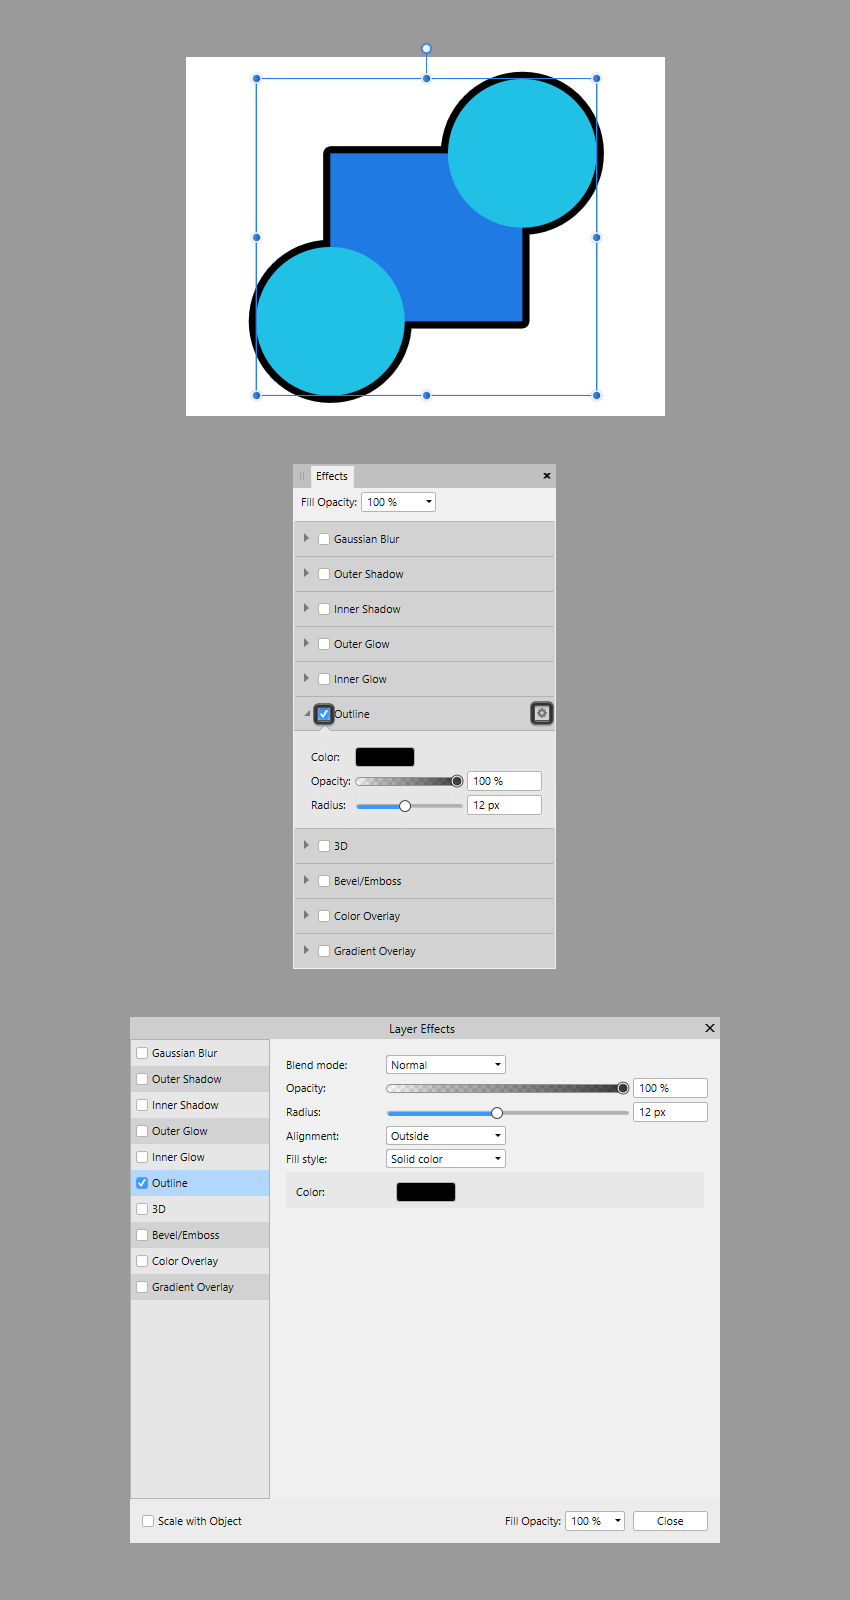 accessing the layer effects through the effects panel